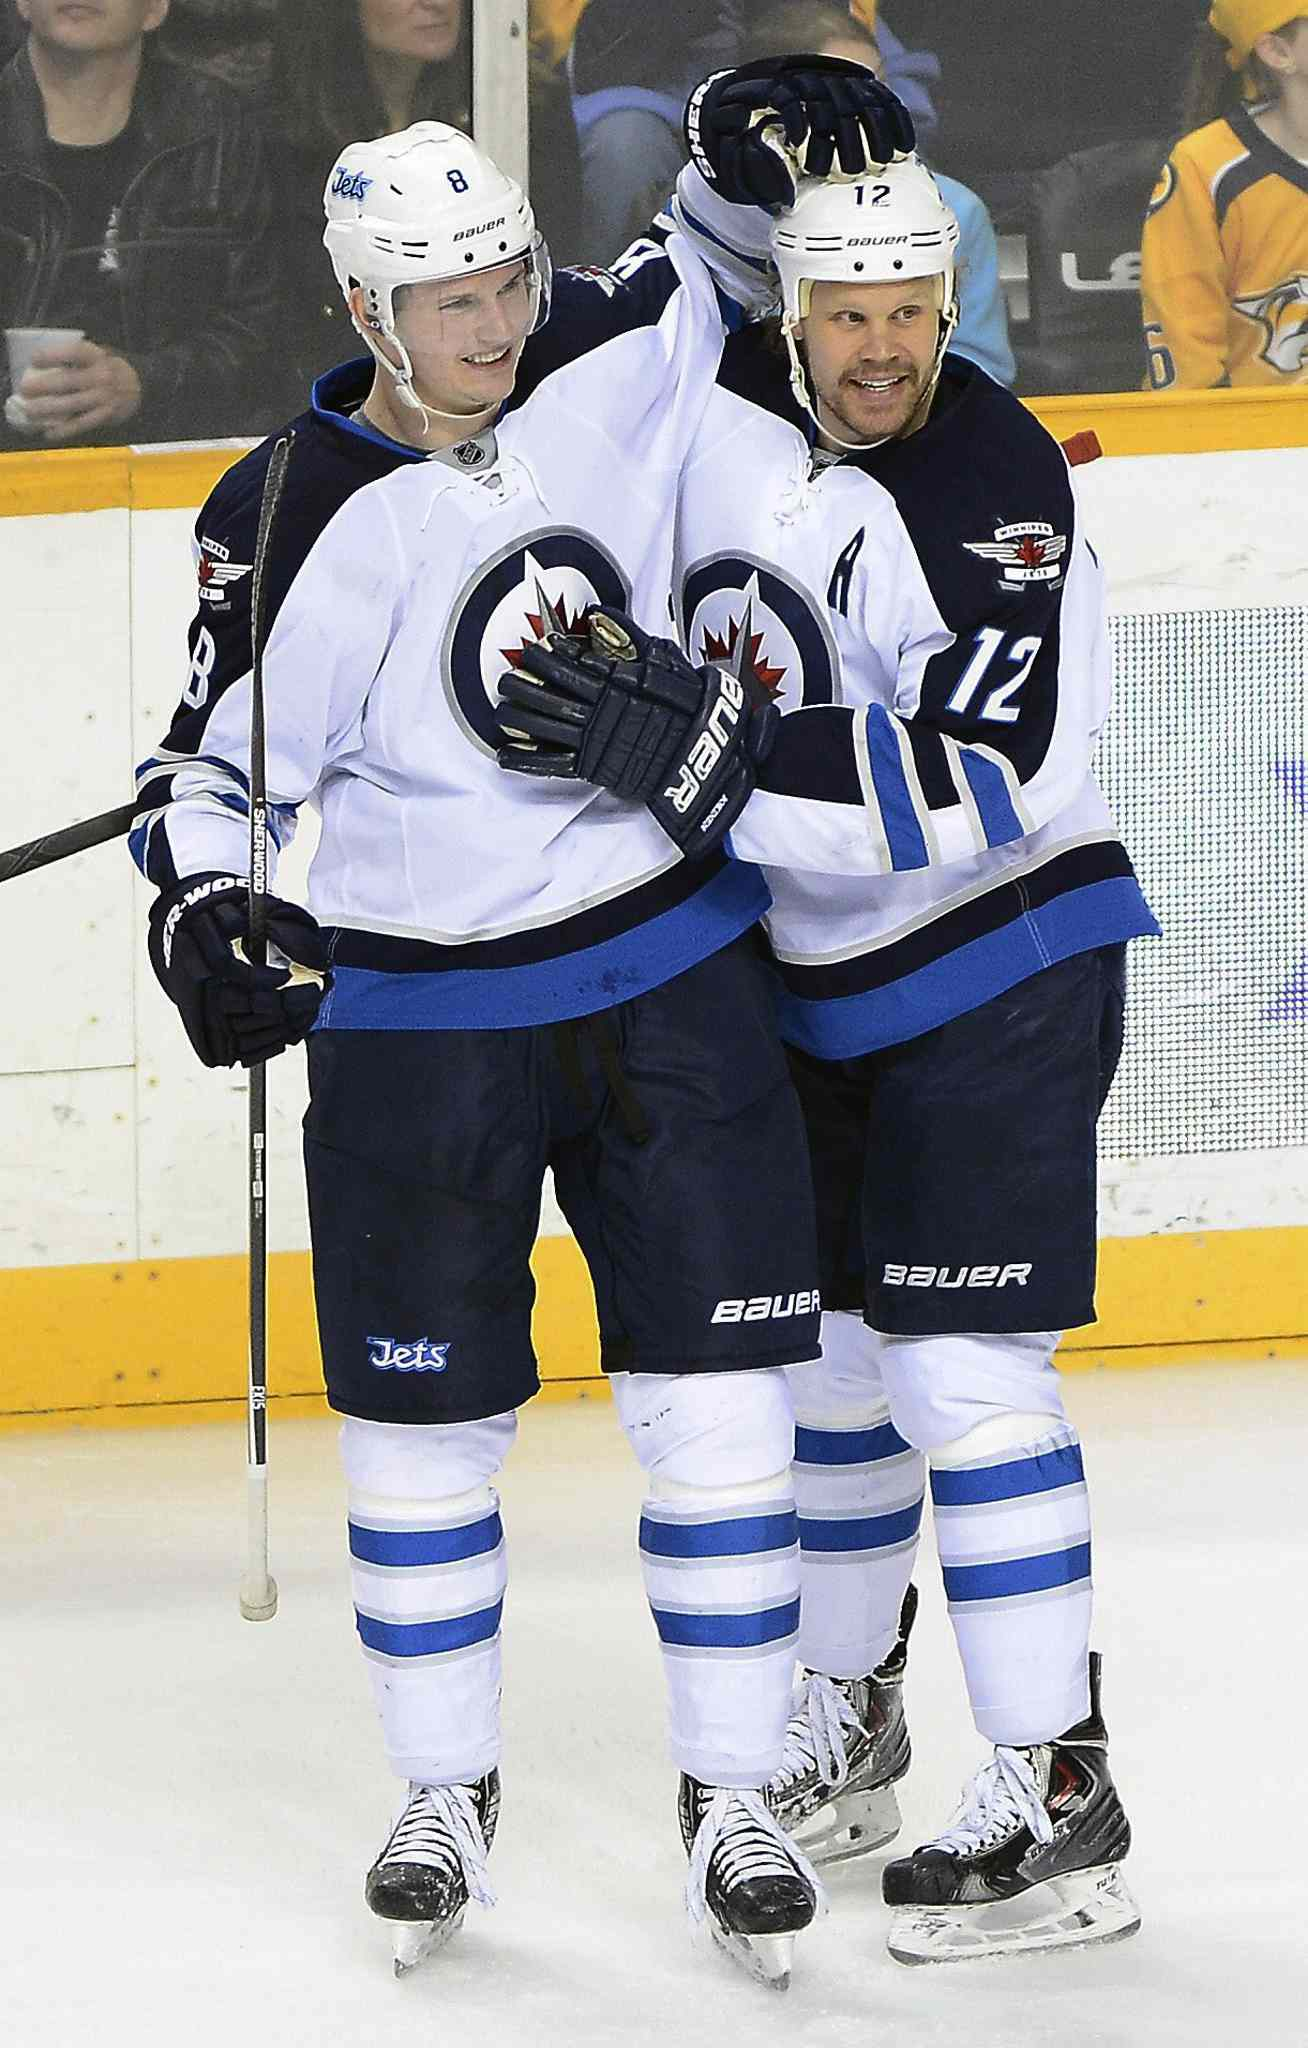 Winnipeg Jets' defenseman Jacob Trouba (8) celebrates with Olli Jokinen (12) after Jokinen scored a second-period goal against the Nashville Predators on Saturday.